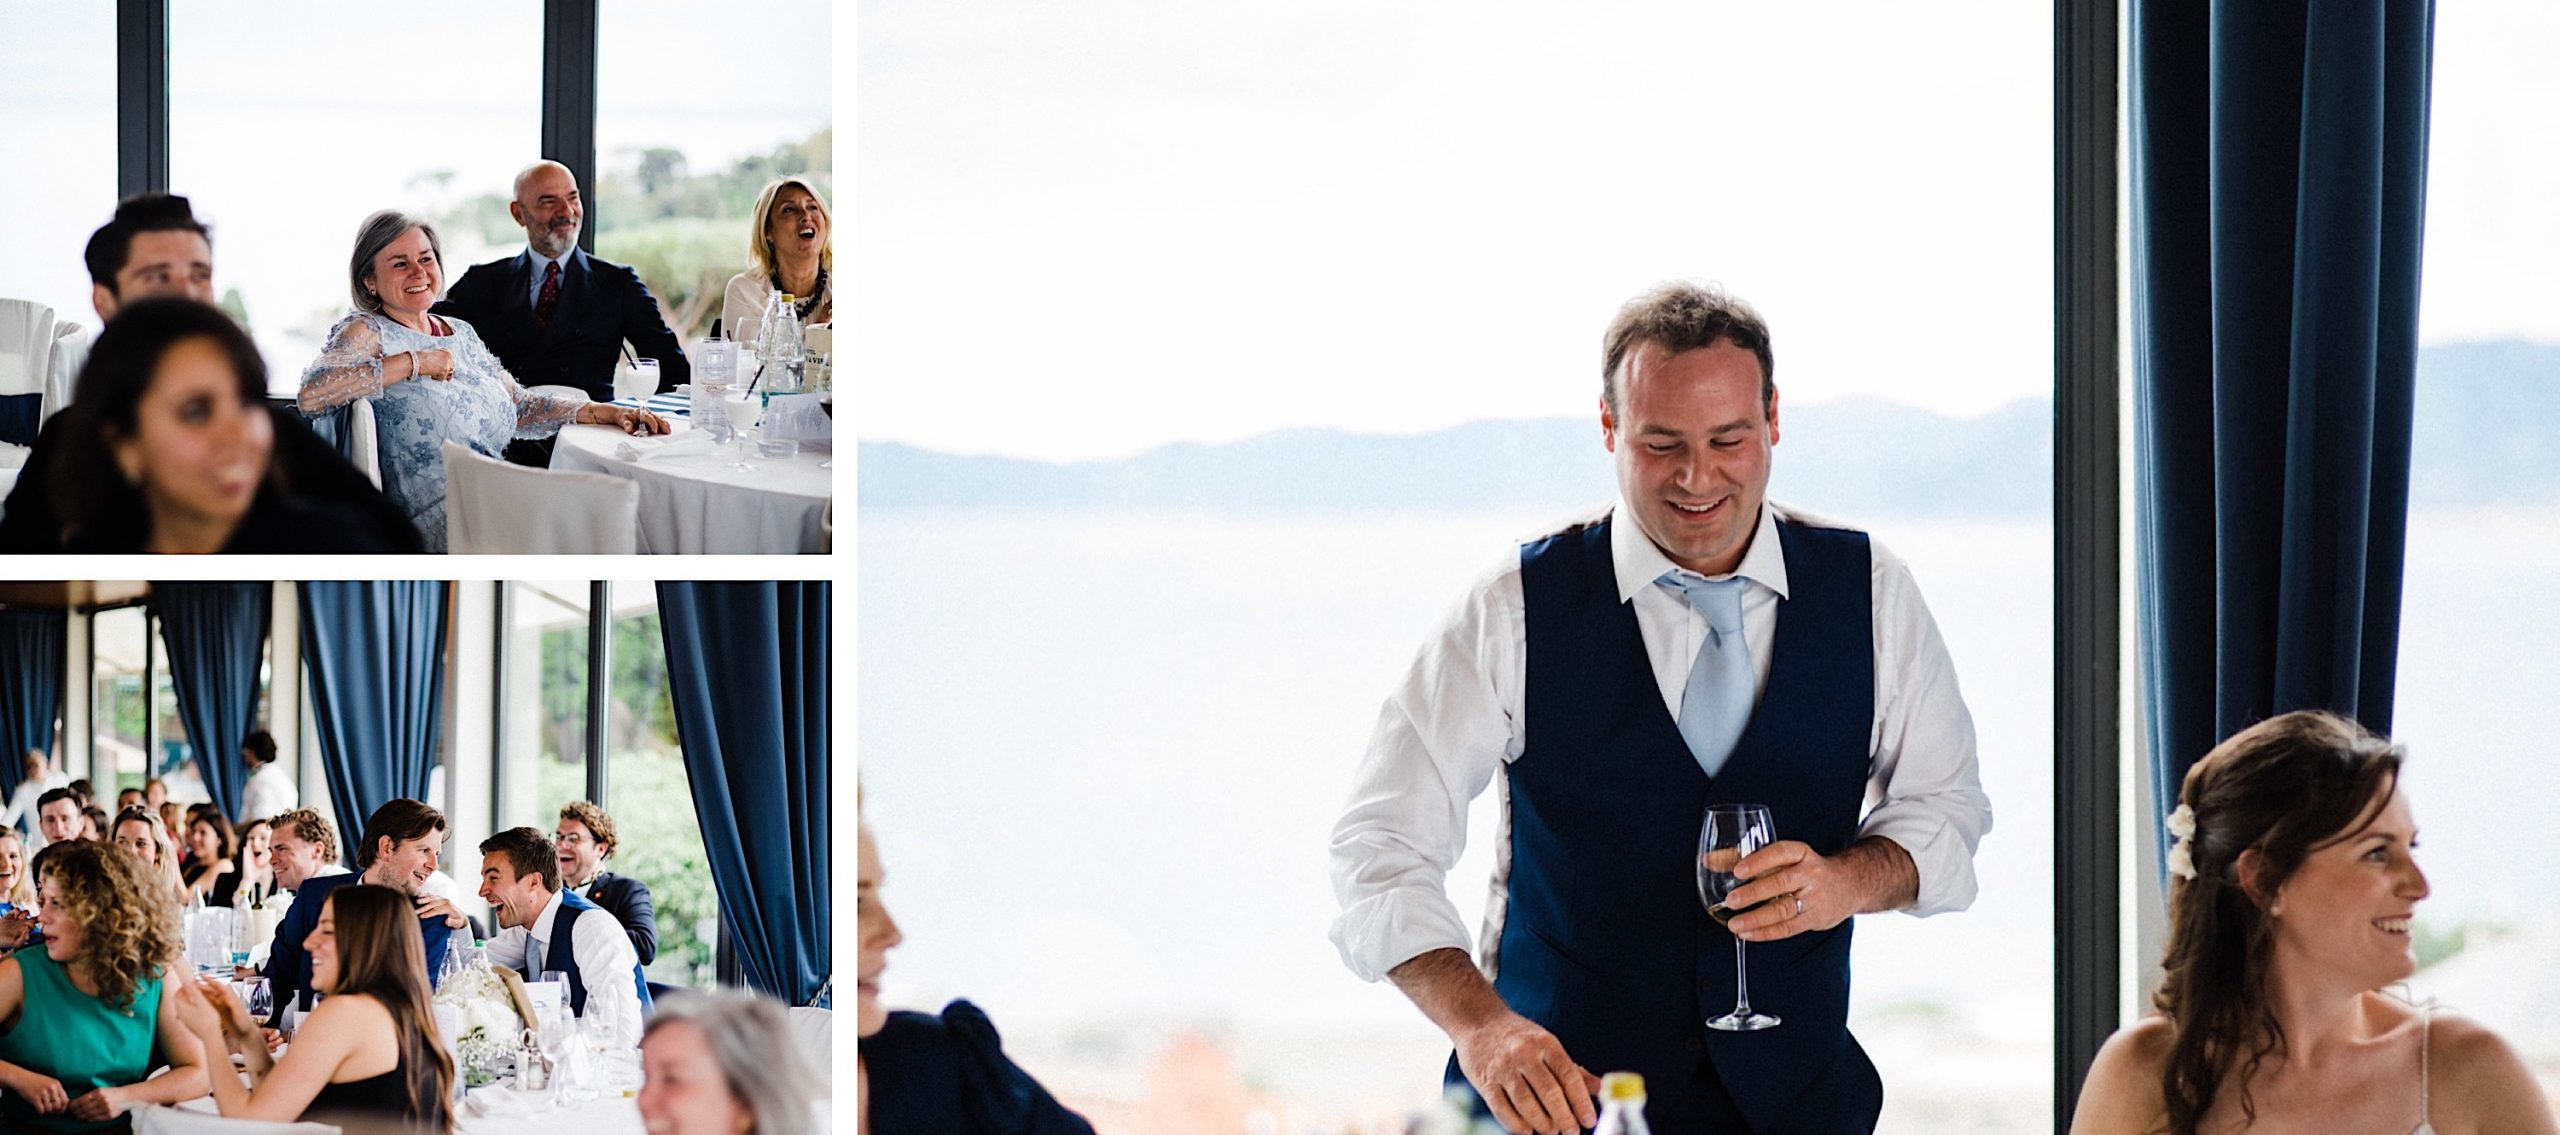 Candid wedding photography of the Groom laughing during his speech and candid photos of guests reactions.